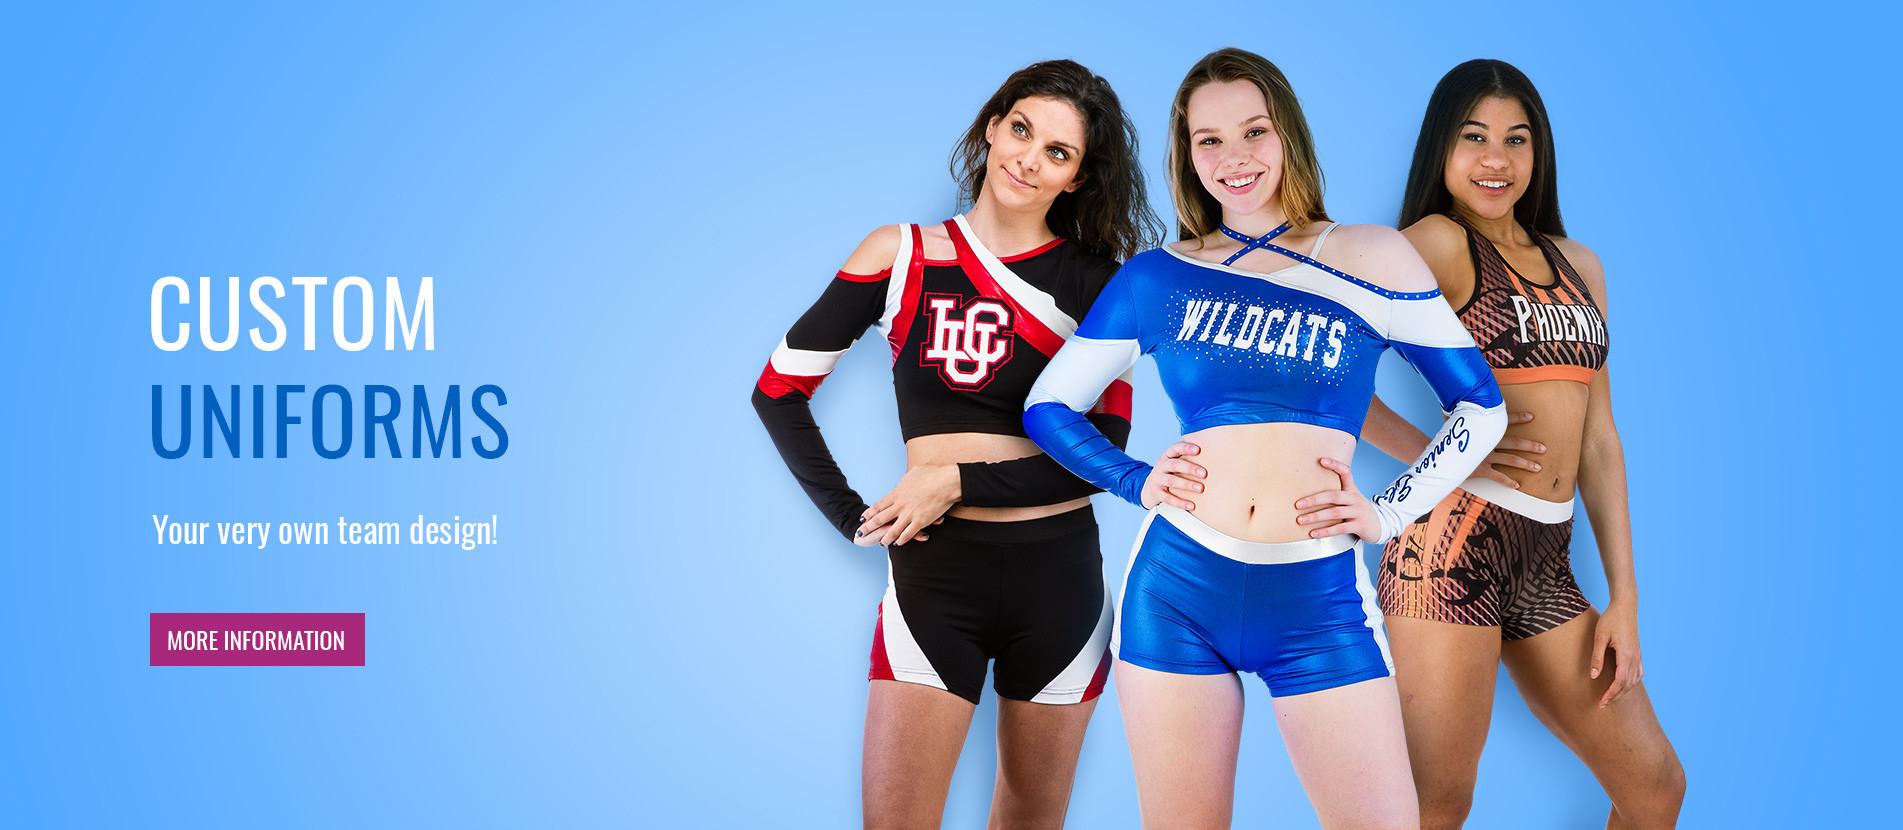 Great uniforms for your team in your specific design